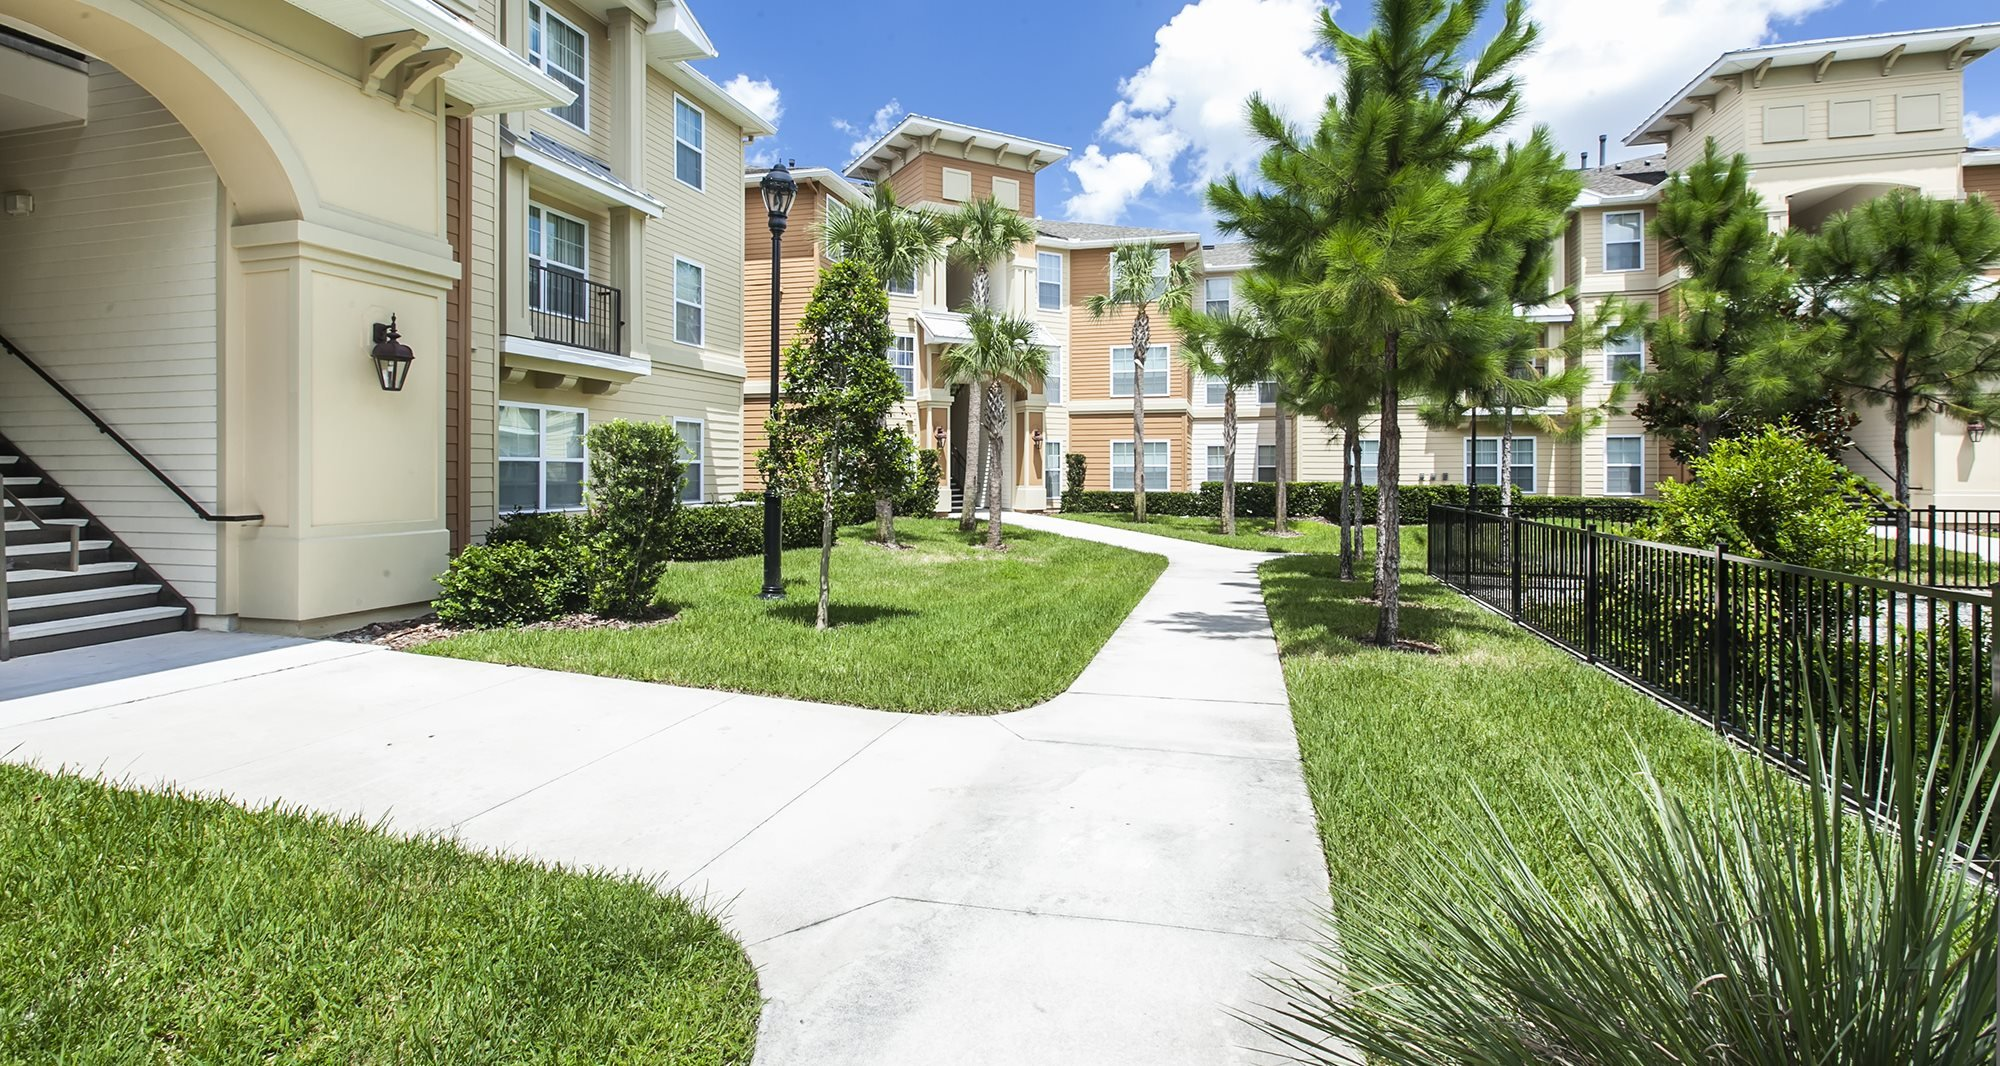 Apartments In Deland Fl Taylor Place Apartments